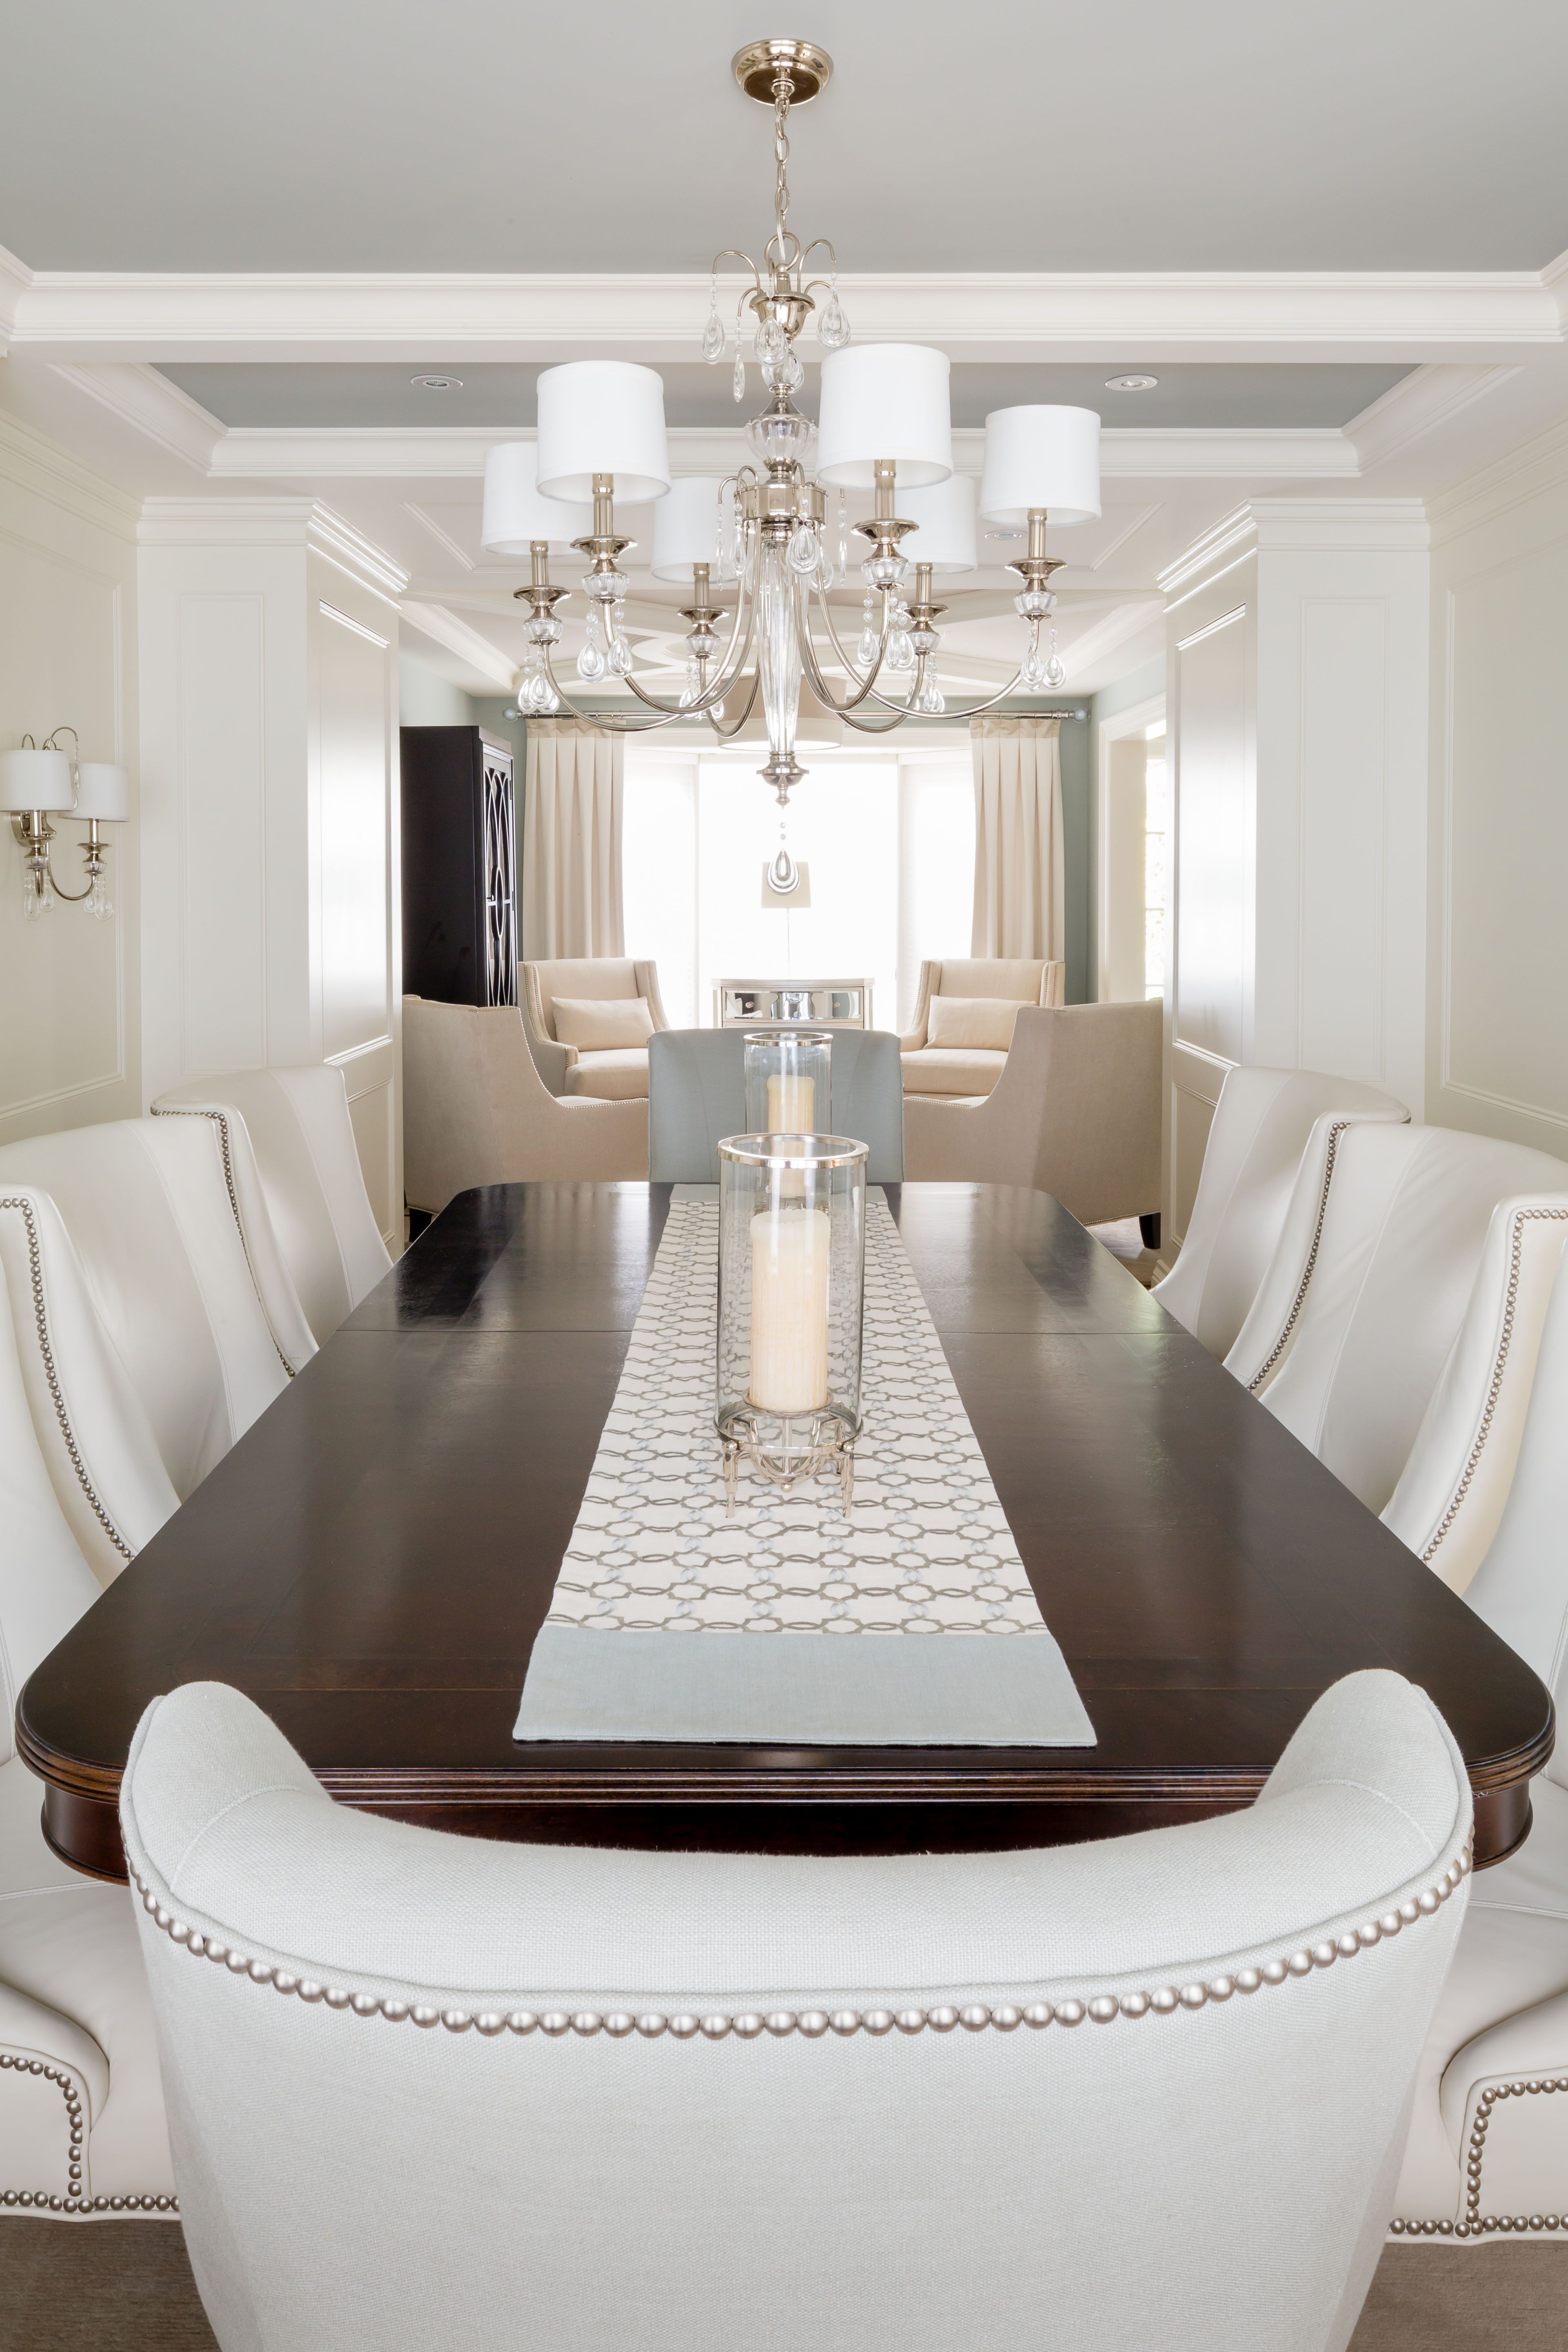 A Transitional Style Dining Room By Parkyn Design Parkyndesign